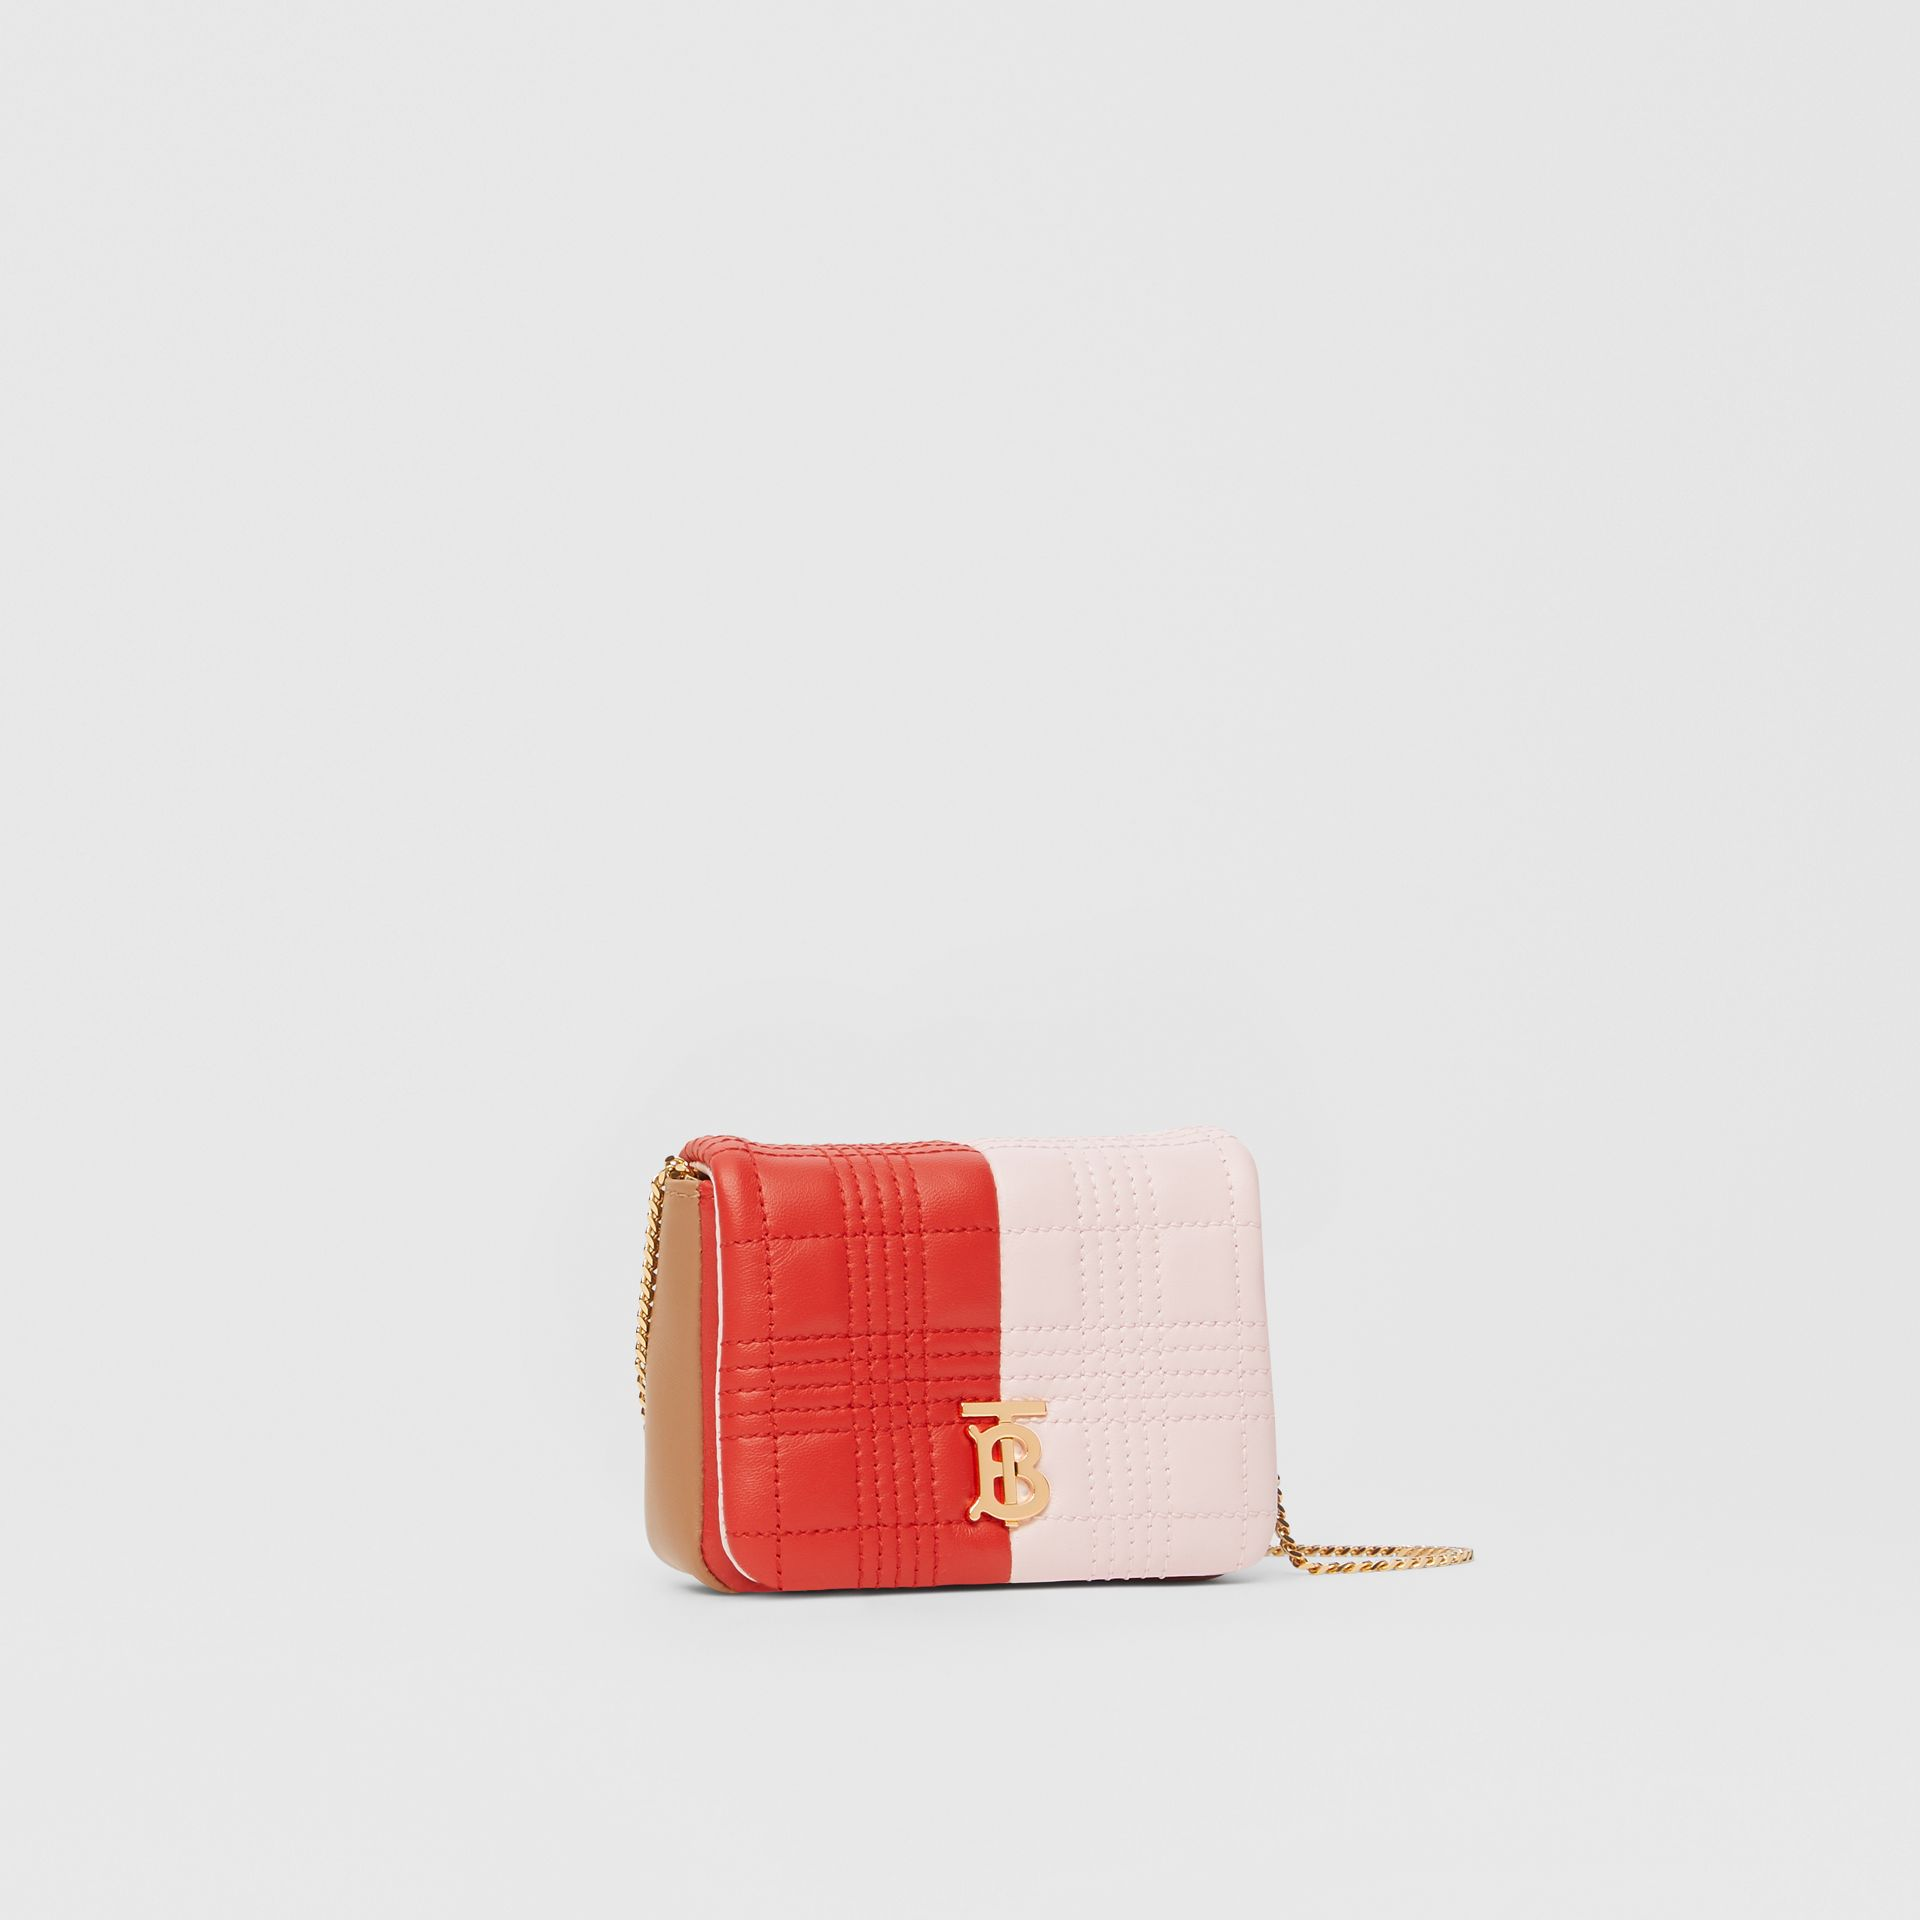 Micro Quilted Tri-tone Lambskin Lola Bag in Red/pink/camel - Women | Burberry Canada - gallery image 6